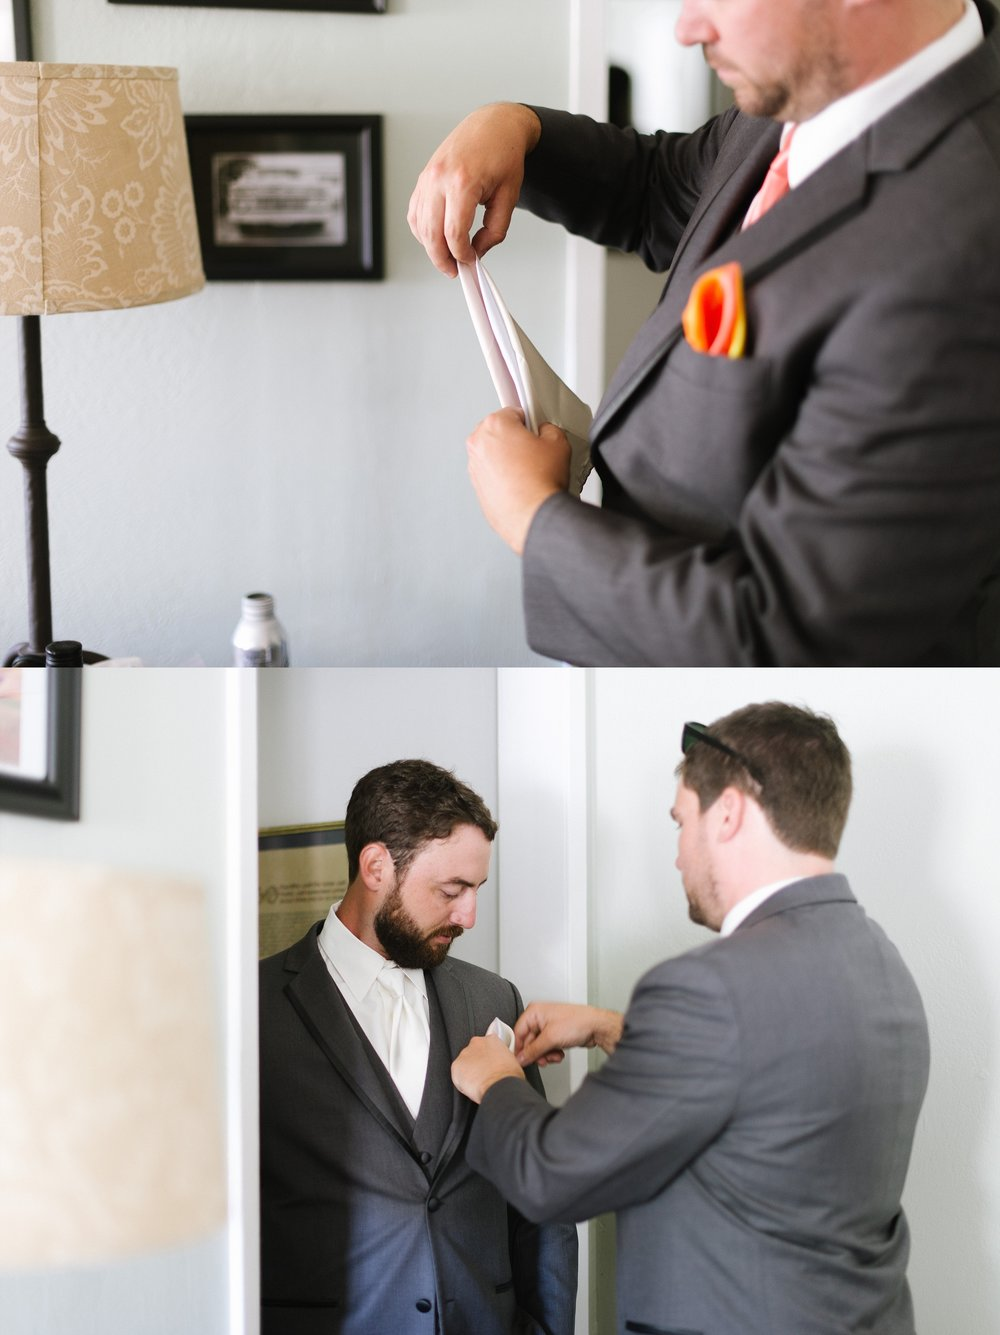 fairfax_ranch_wedding_chelsea_dier_photography_0002.jpg